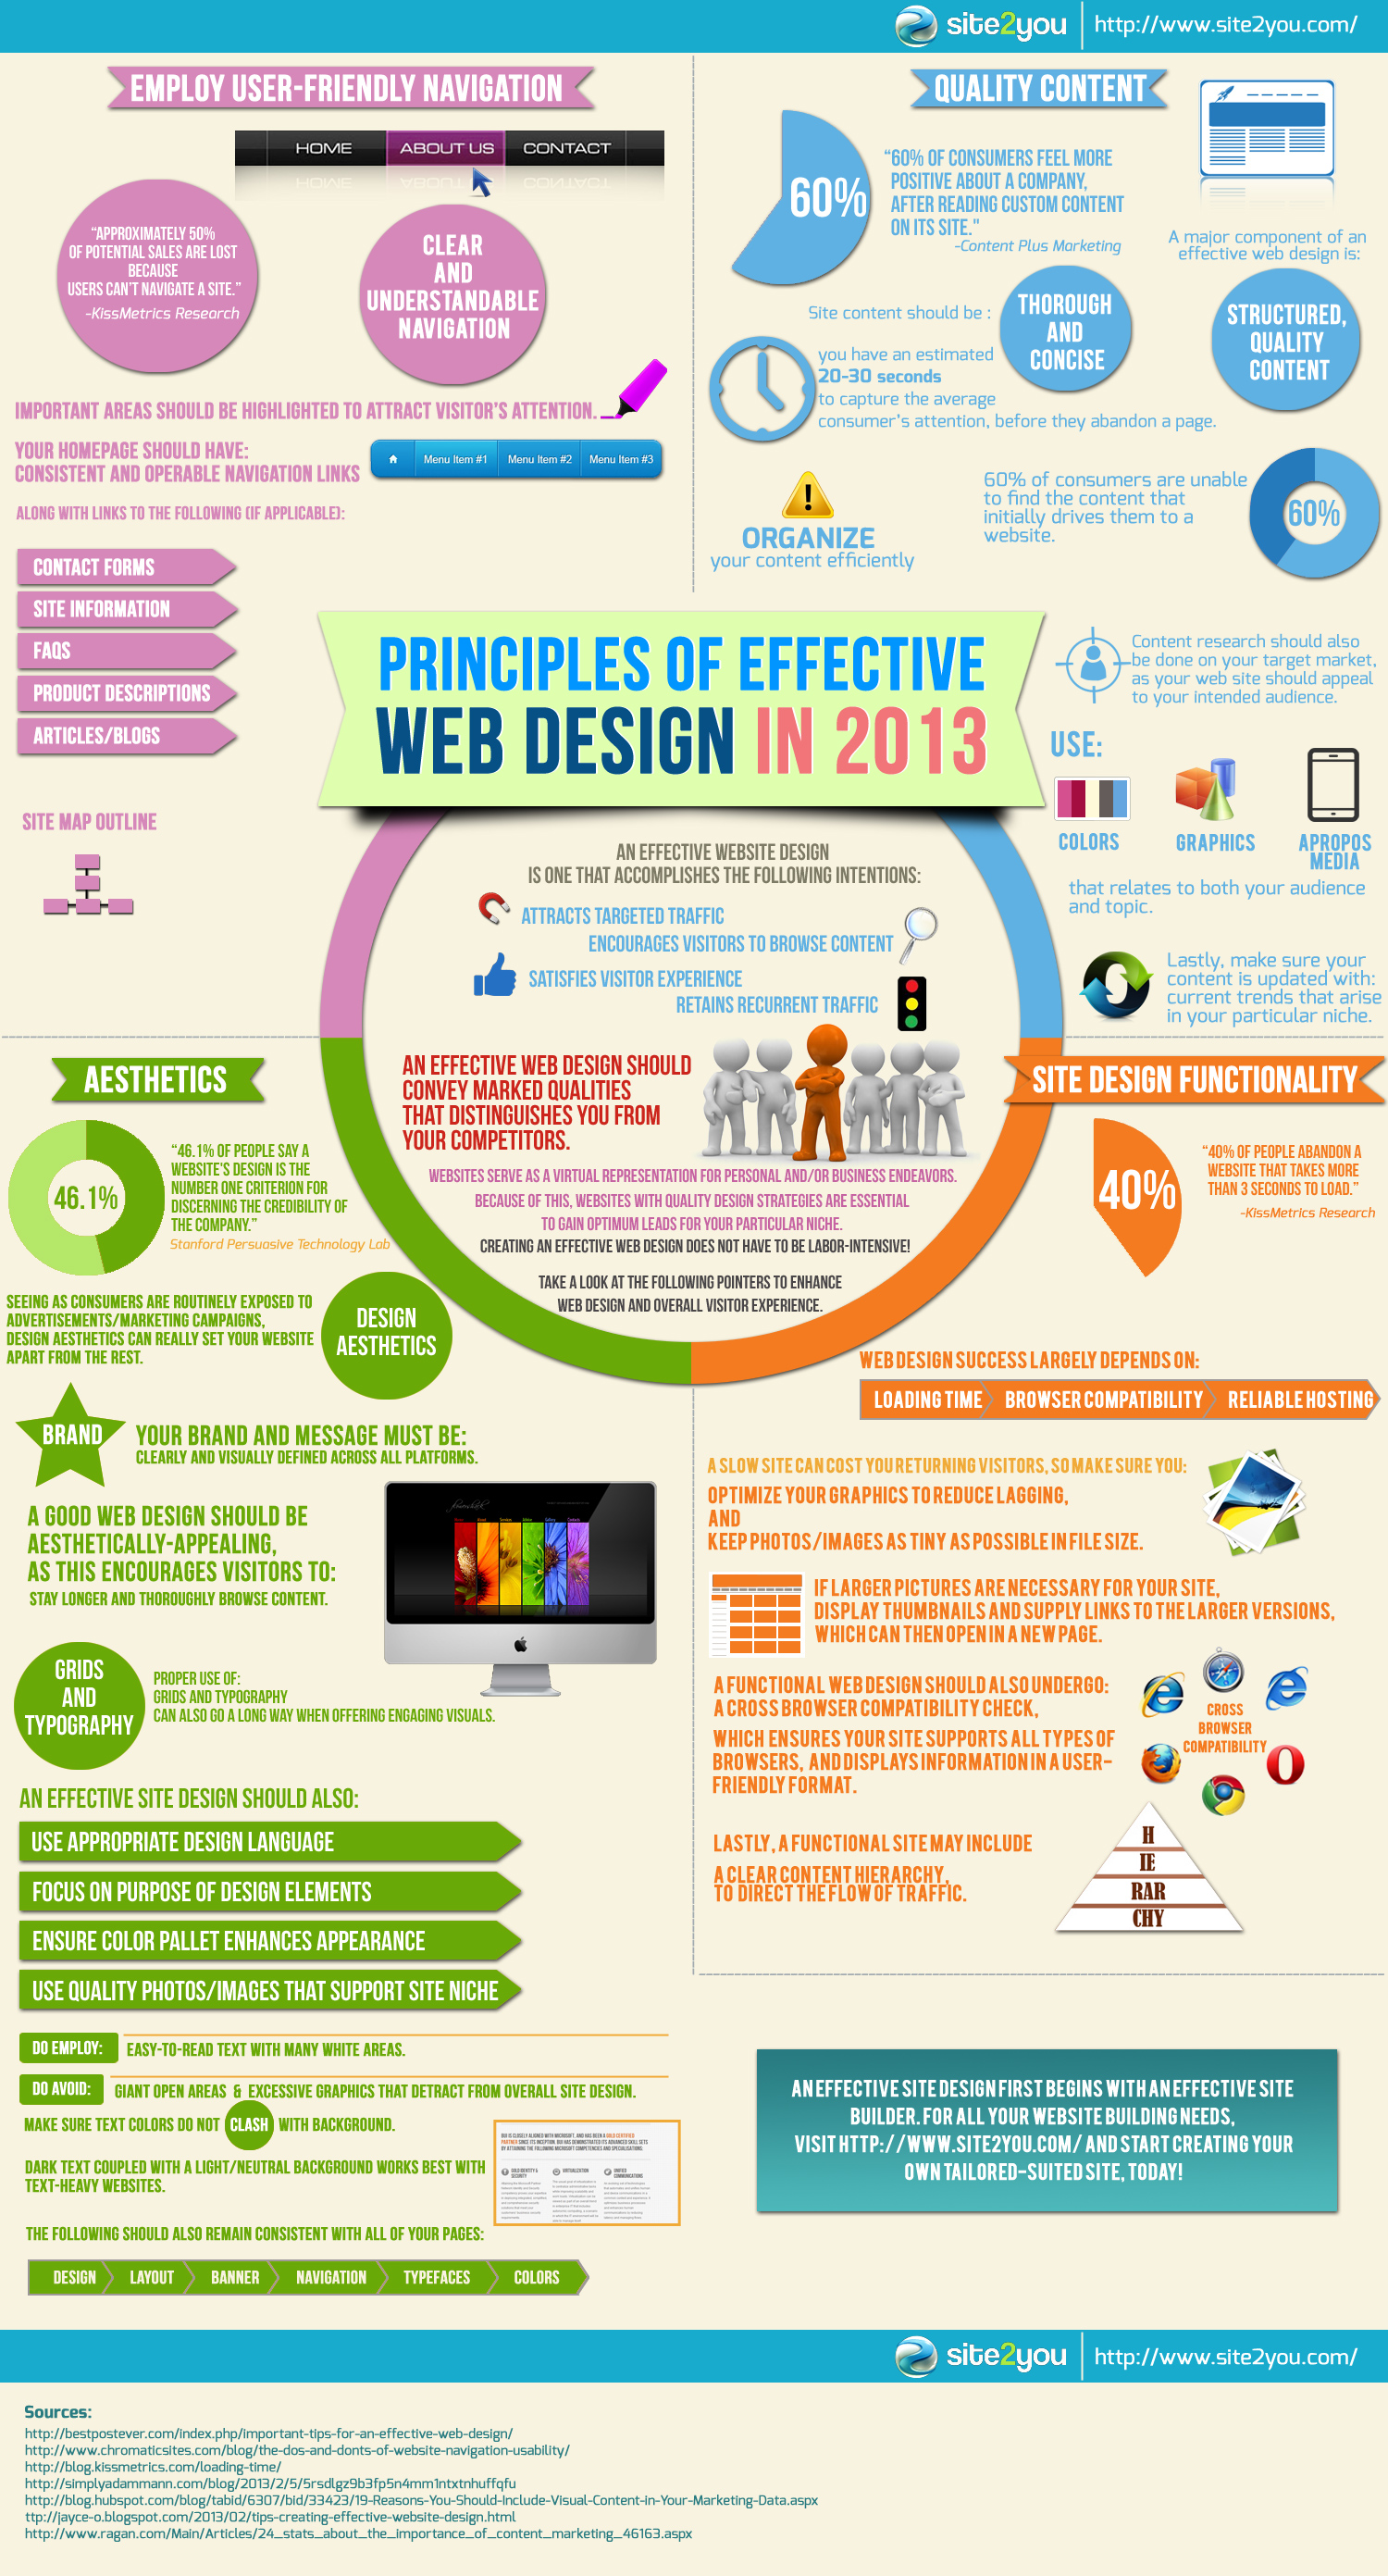 principles-of-efffective-web-design-in-2013_5180991fc6a4e